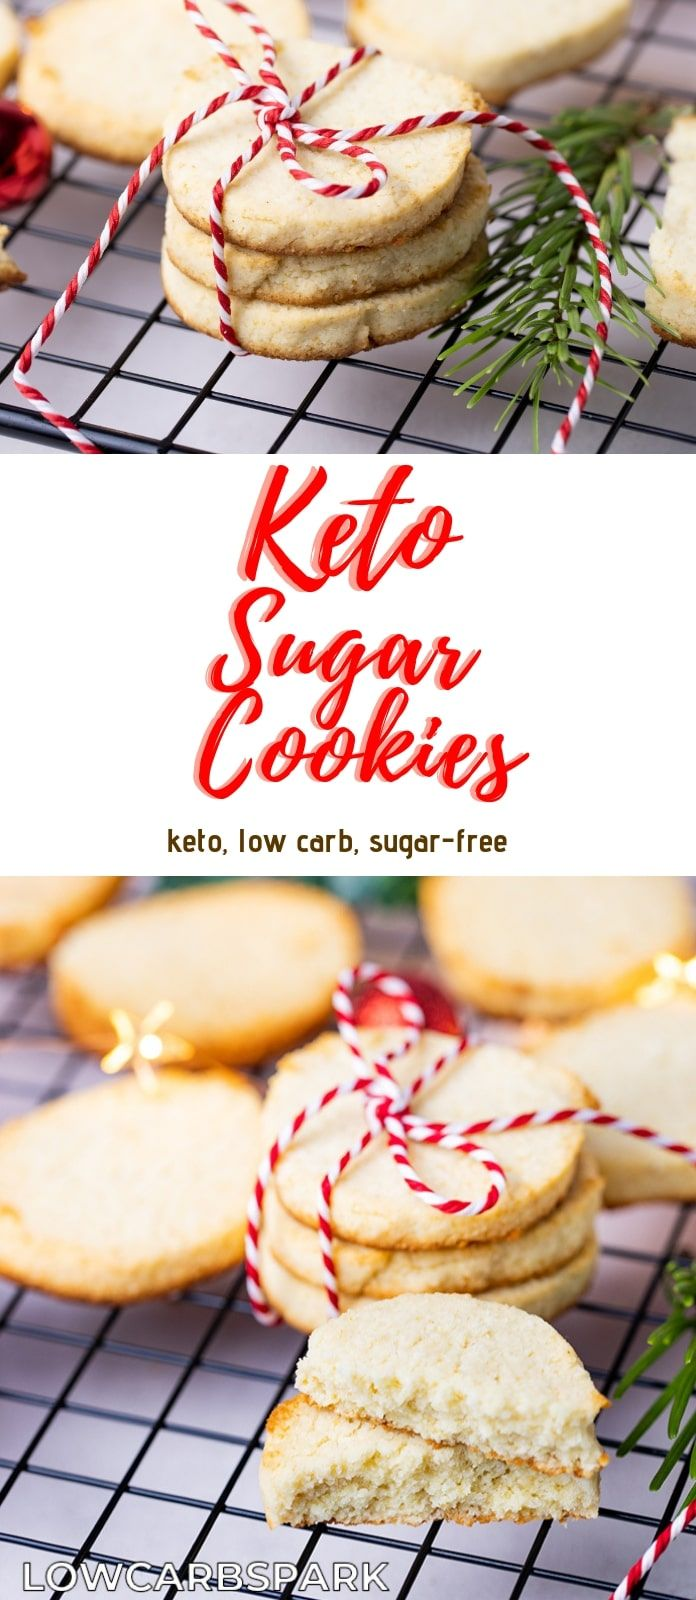 Keto Sugar Cookies - Low-Carb & Sugar-Free #sugarcookies